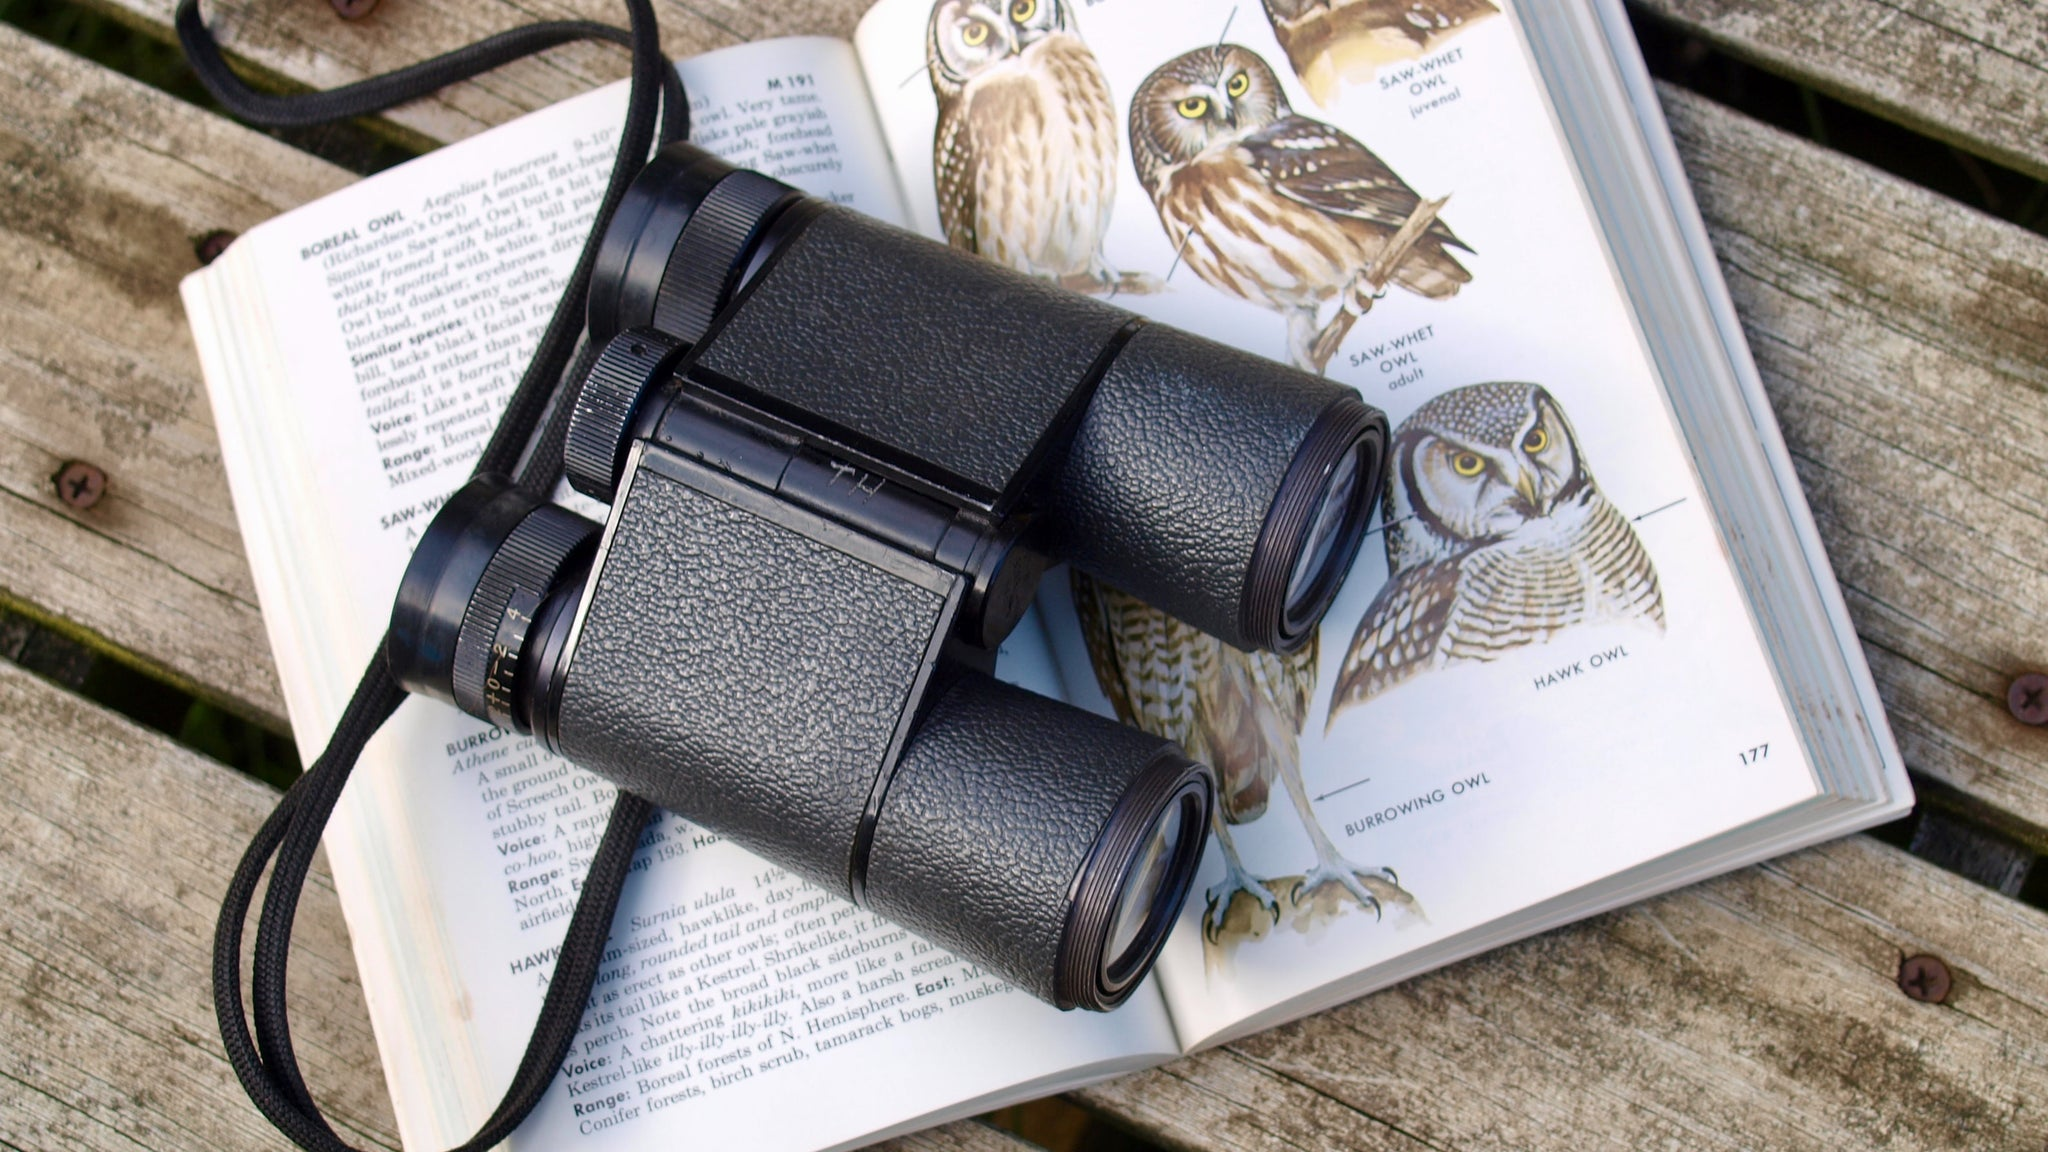 Binoculars resting on a wildlife book showing types of owls